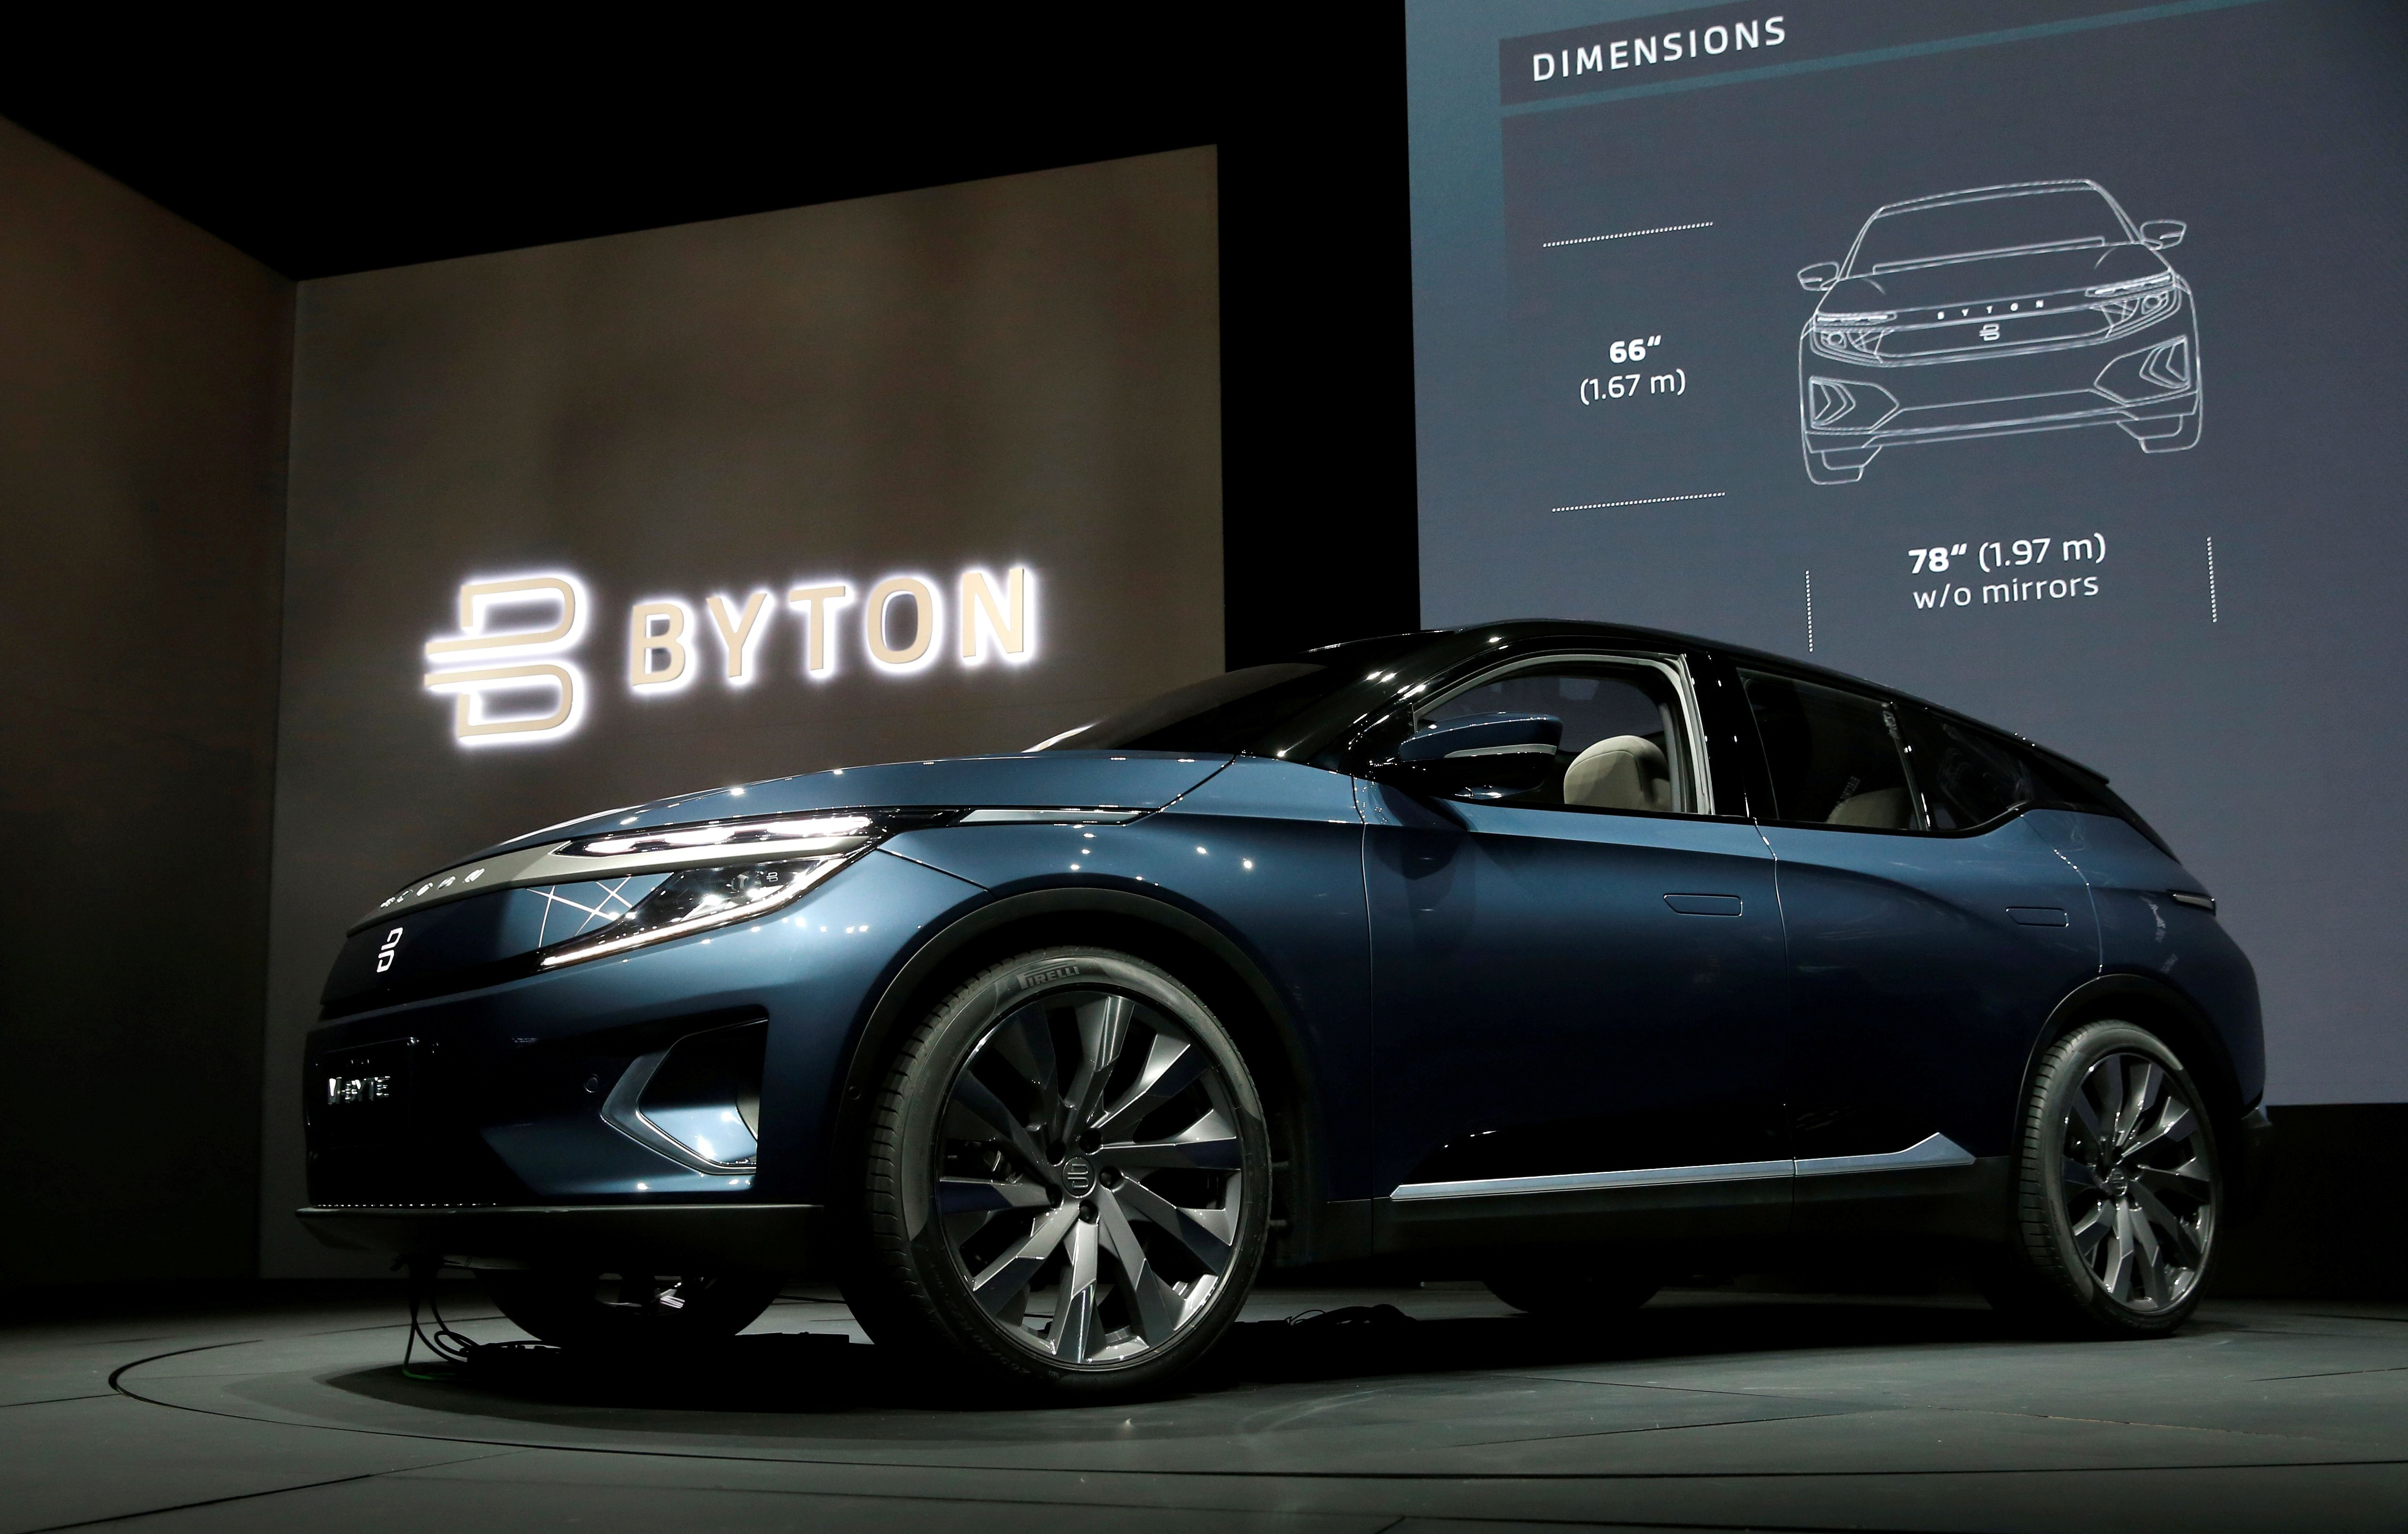 El SUV totalmente eléctrico Byton M-Byte en CES 2020 en Las Vegas, Nevada (REUTERS / Steve Marcus / File Photo REUTERS/Steve Marcus/File Photo)